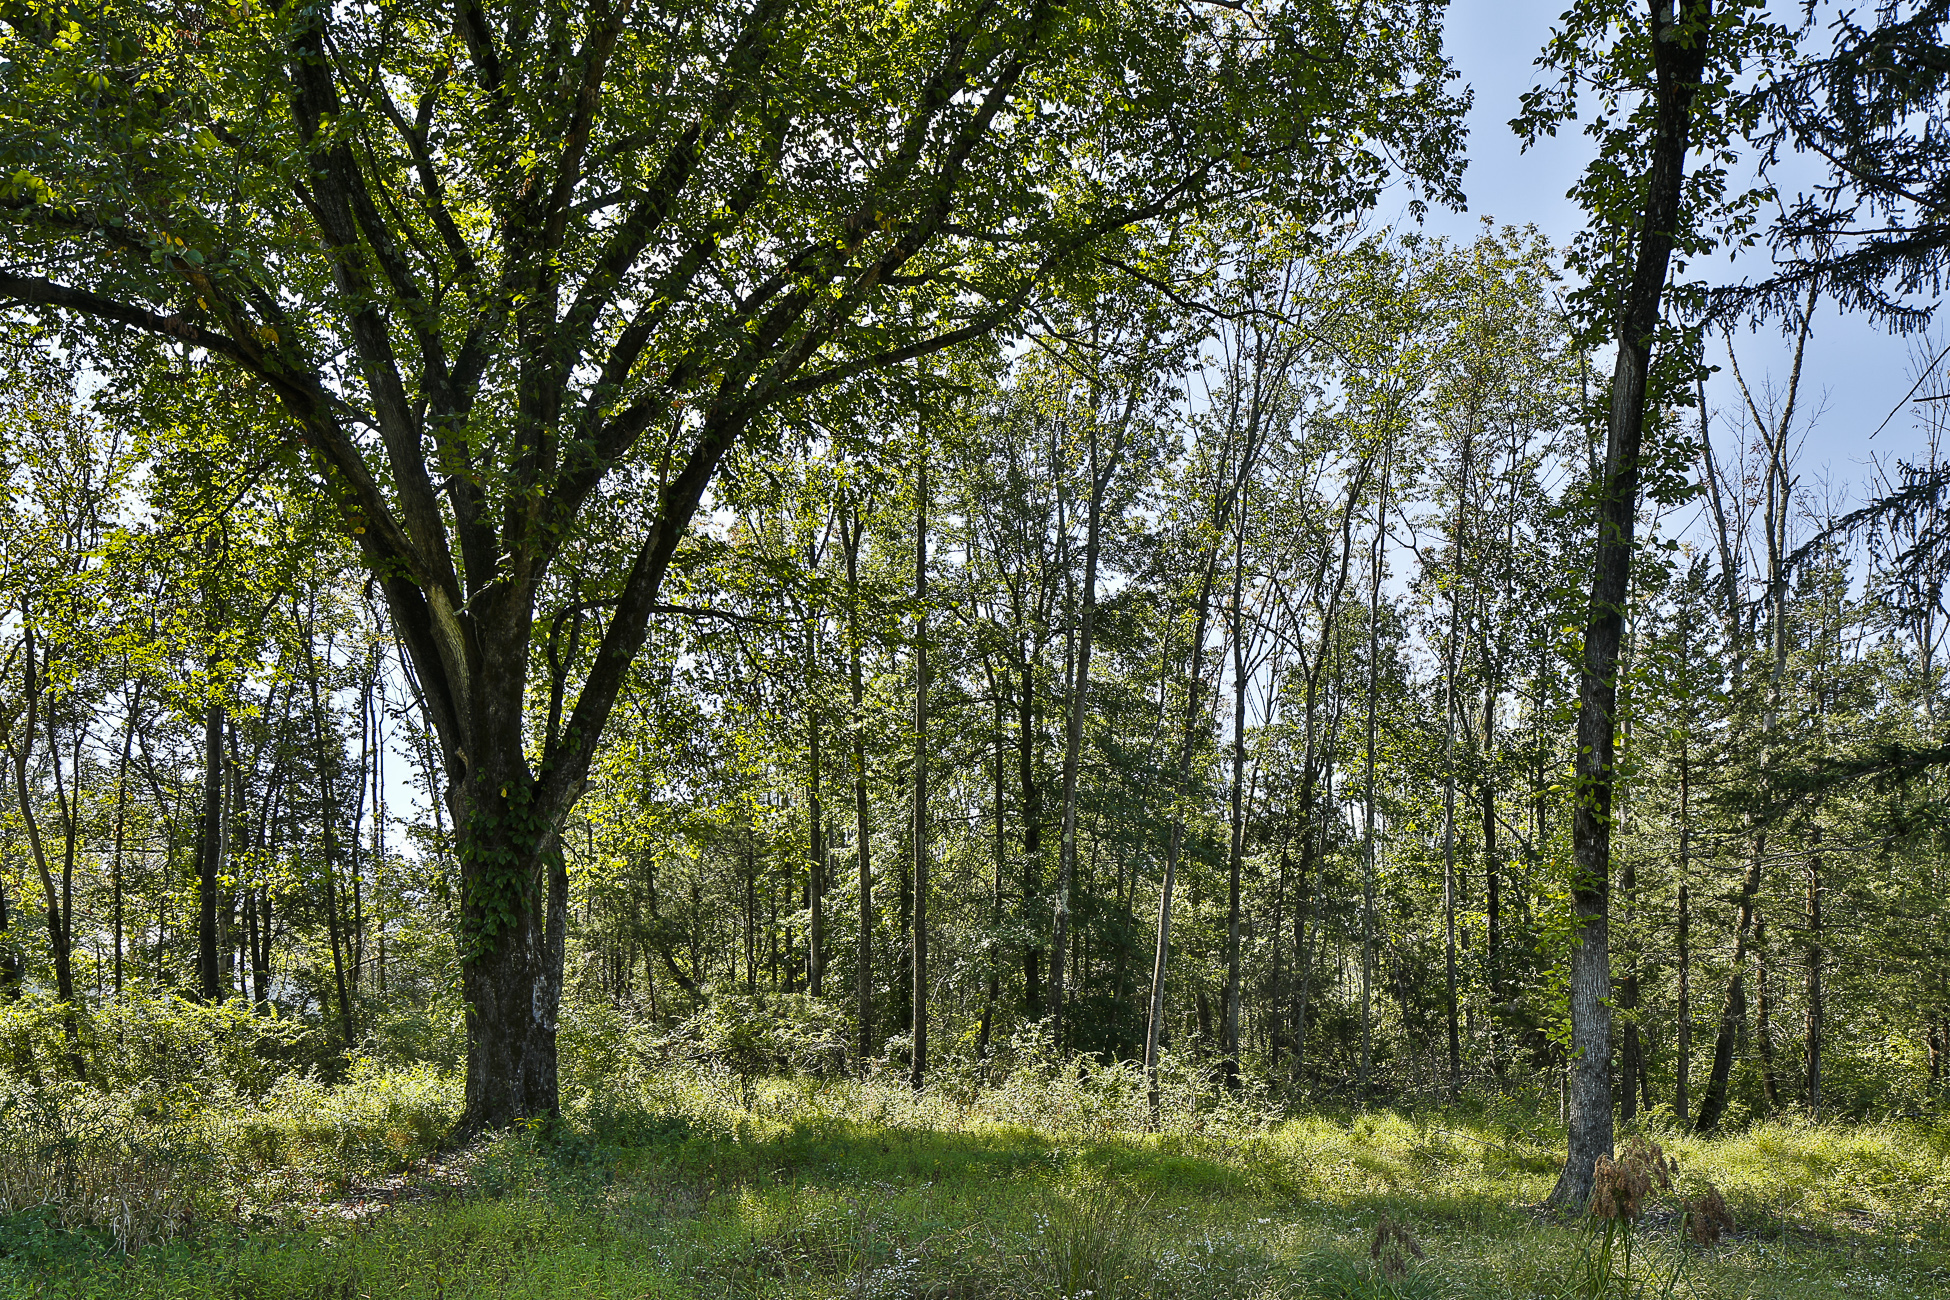 Additional photo for property listing at Build Your Dream Home on 5.77 Acres Near Princeton - Lawrence Township 8 Poe Road Princeton, Нью-Джерси 08540 Соединенные Штаты